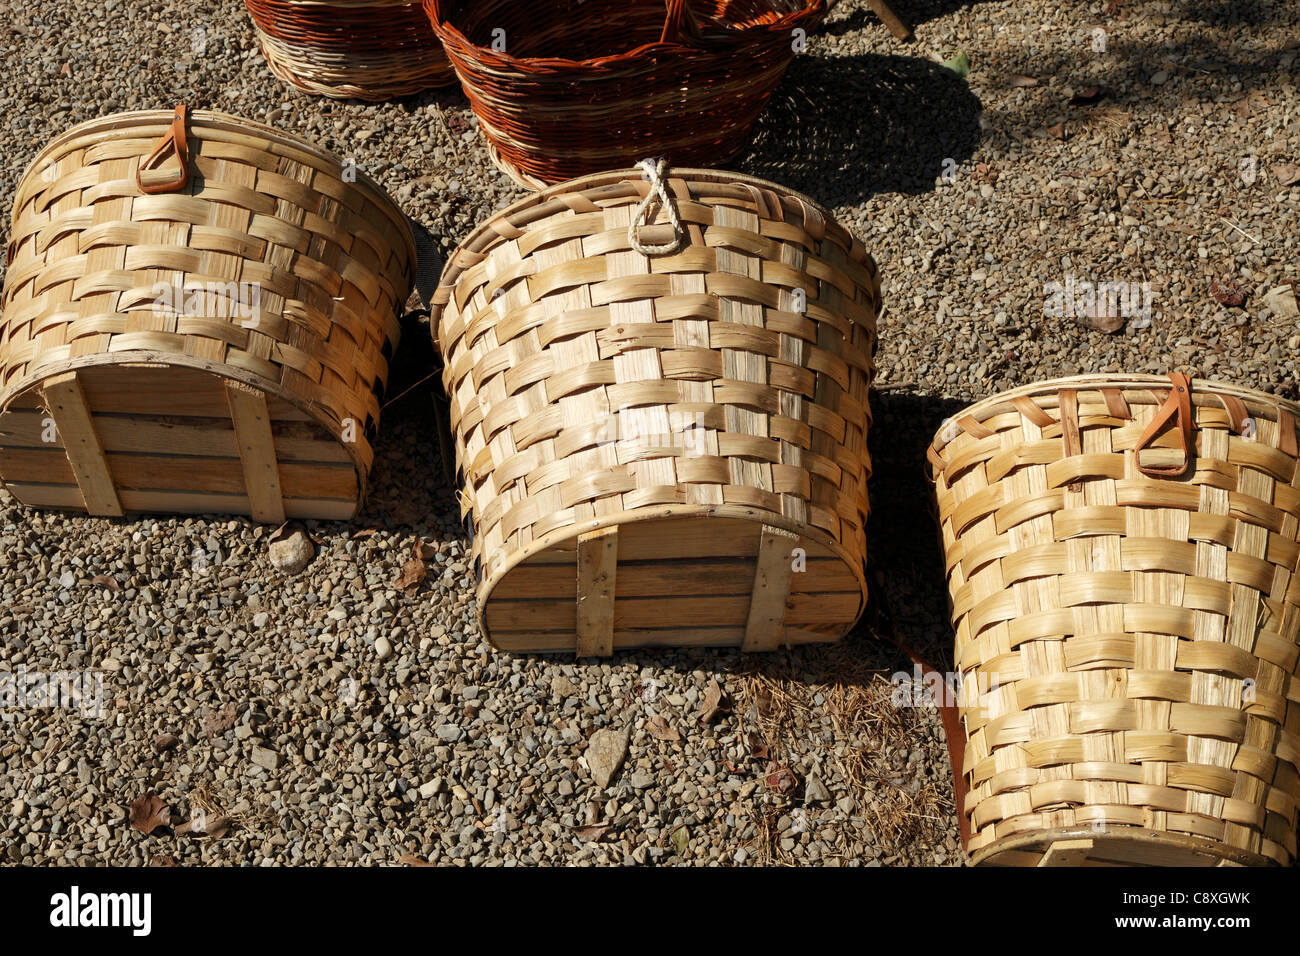 Cane Baskets Cane Baskets Stock Photos And Cane Baskets Stock Images Alamy